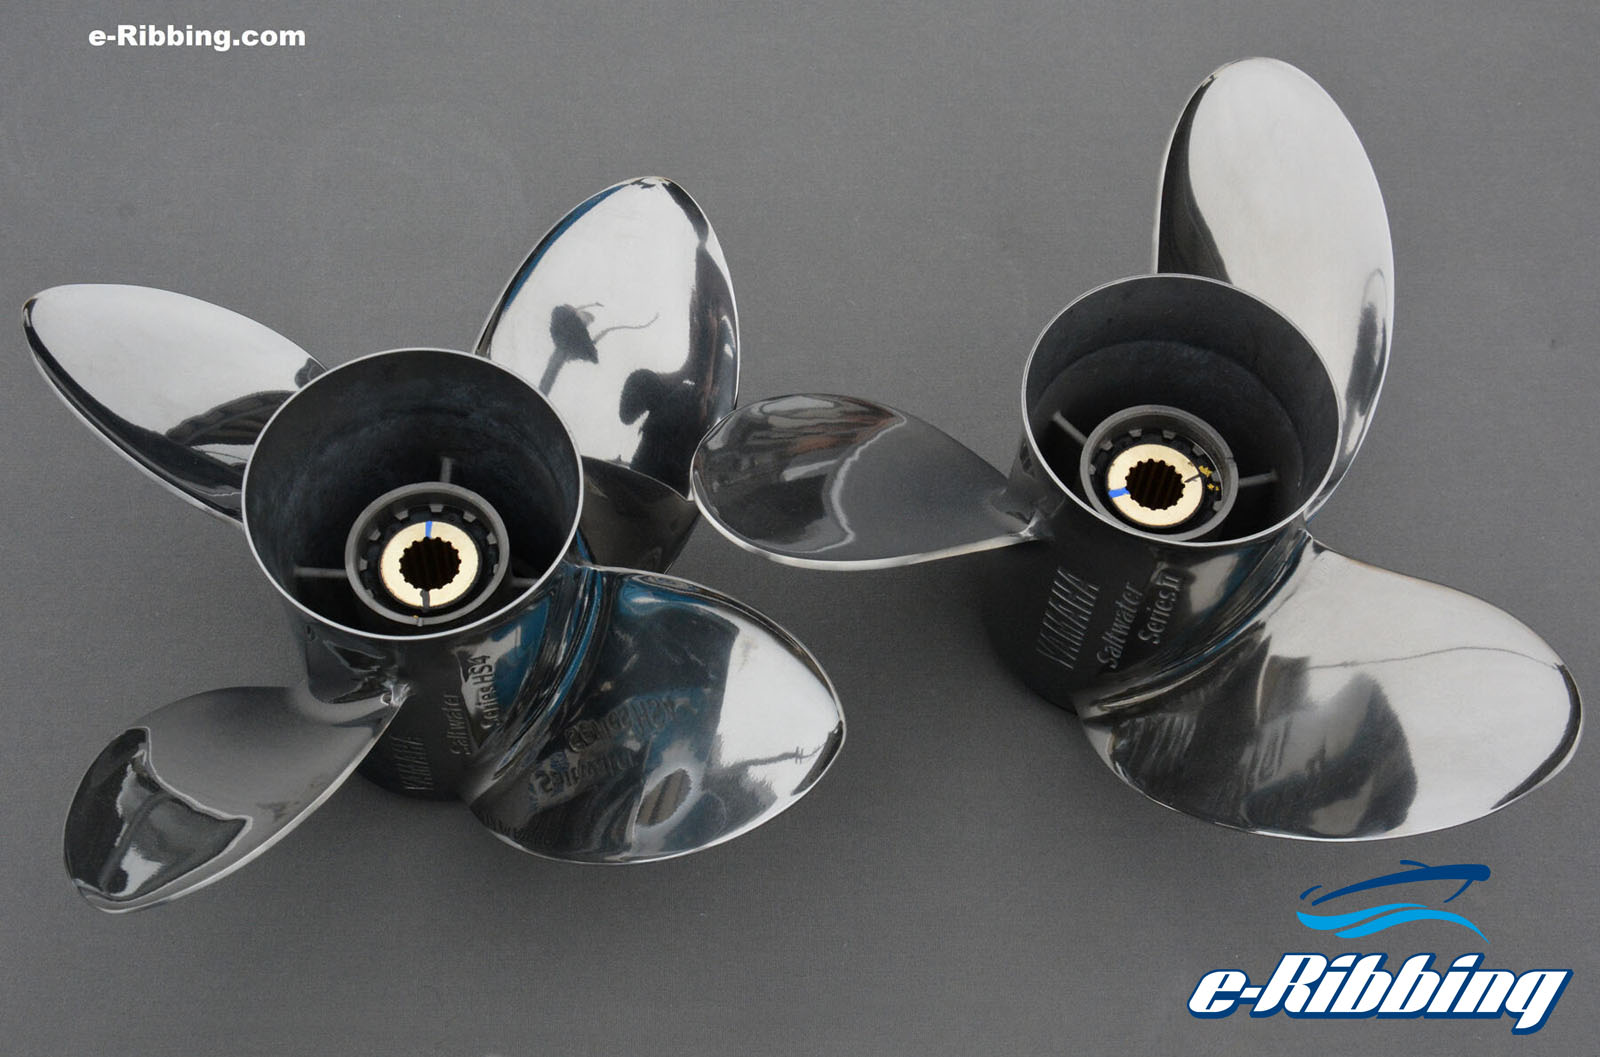 Testing the HS4 4-blade and the Saltwater Series II 3-blade Yamaha's propellers